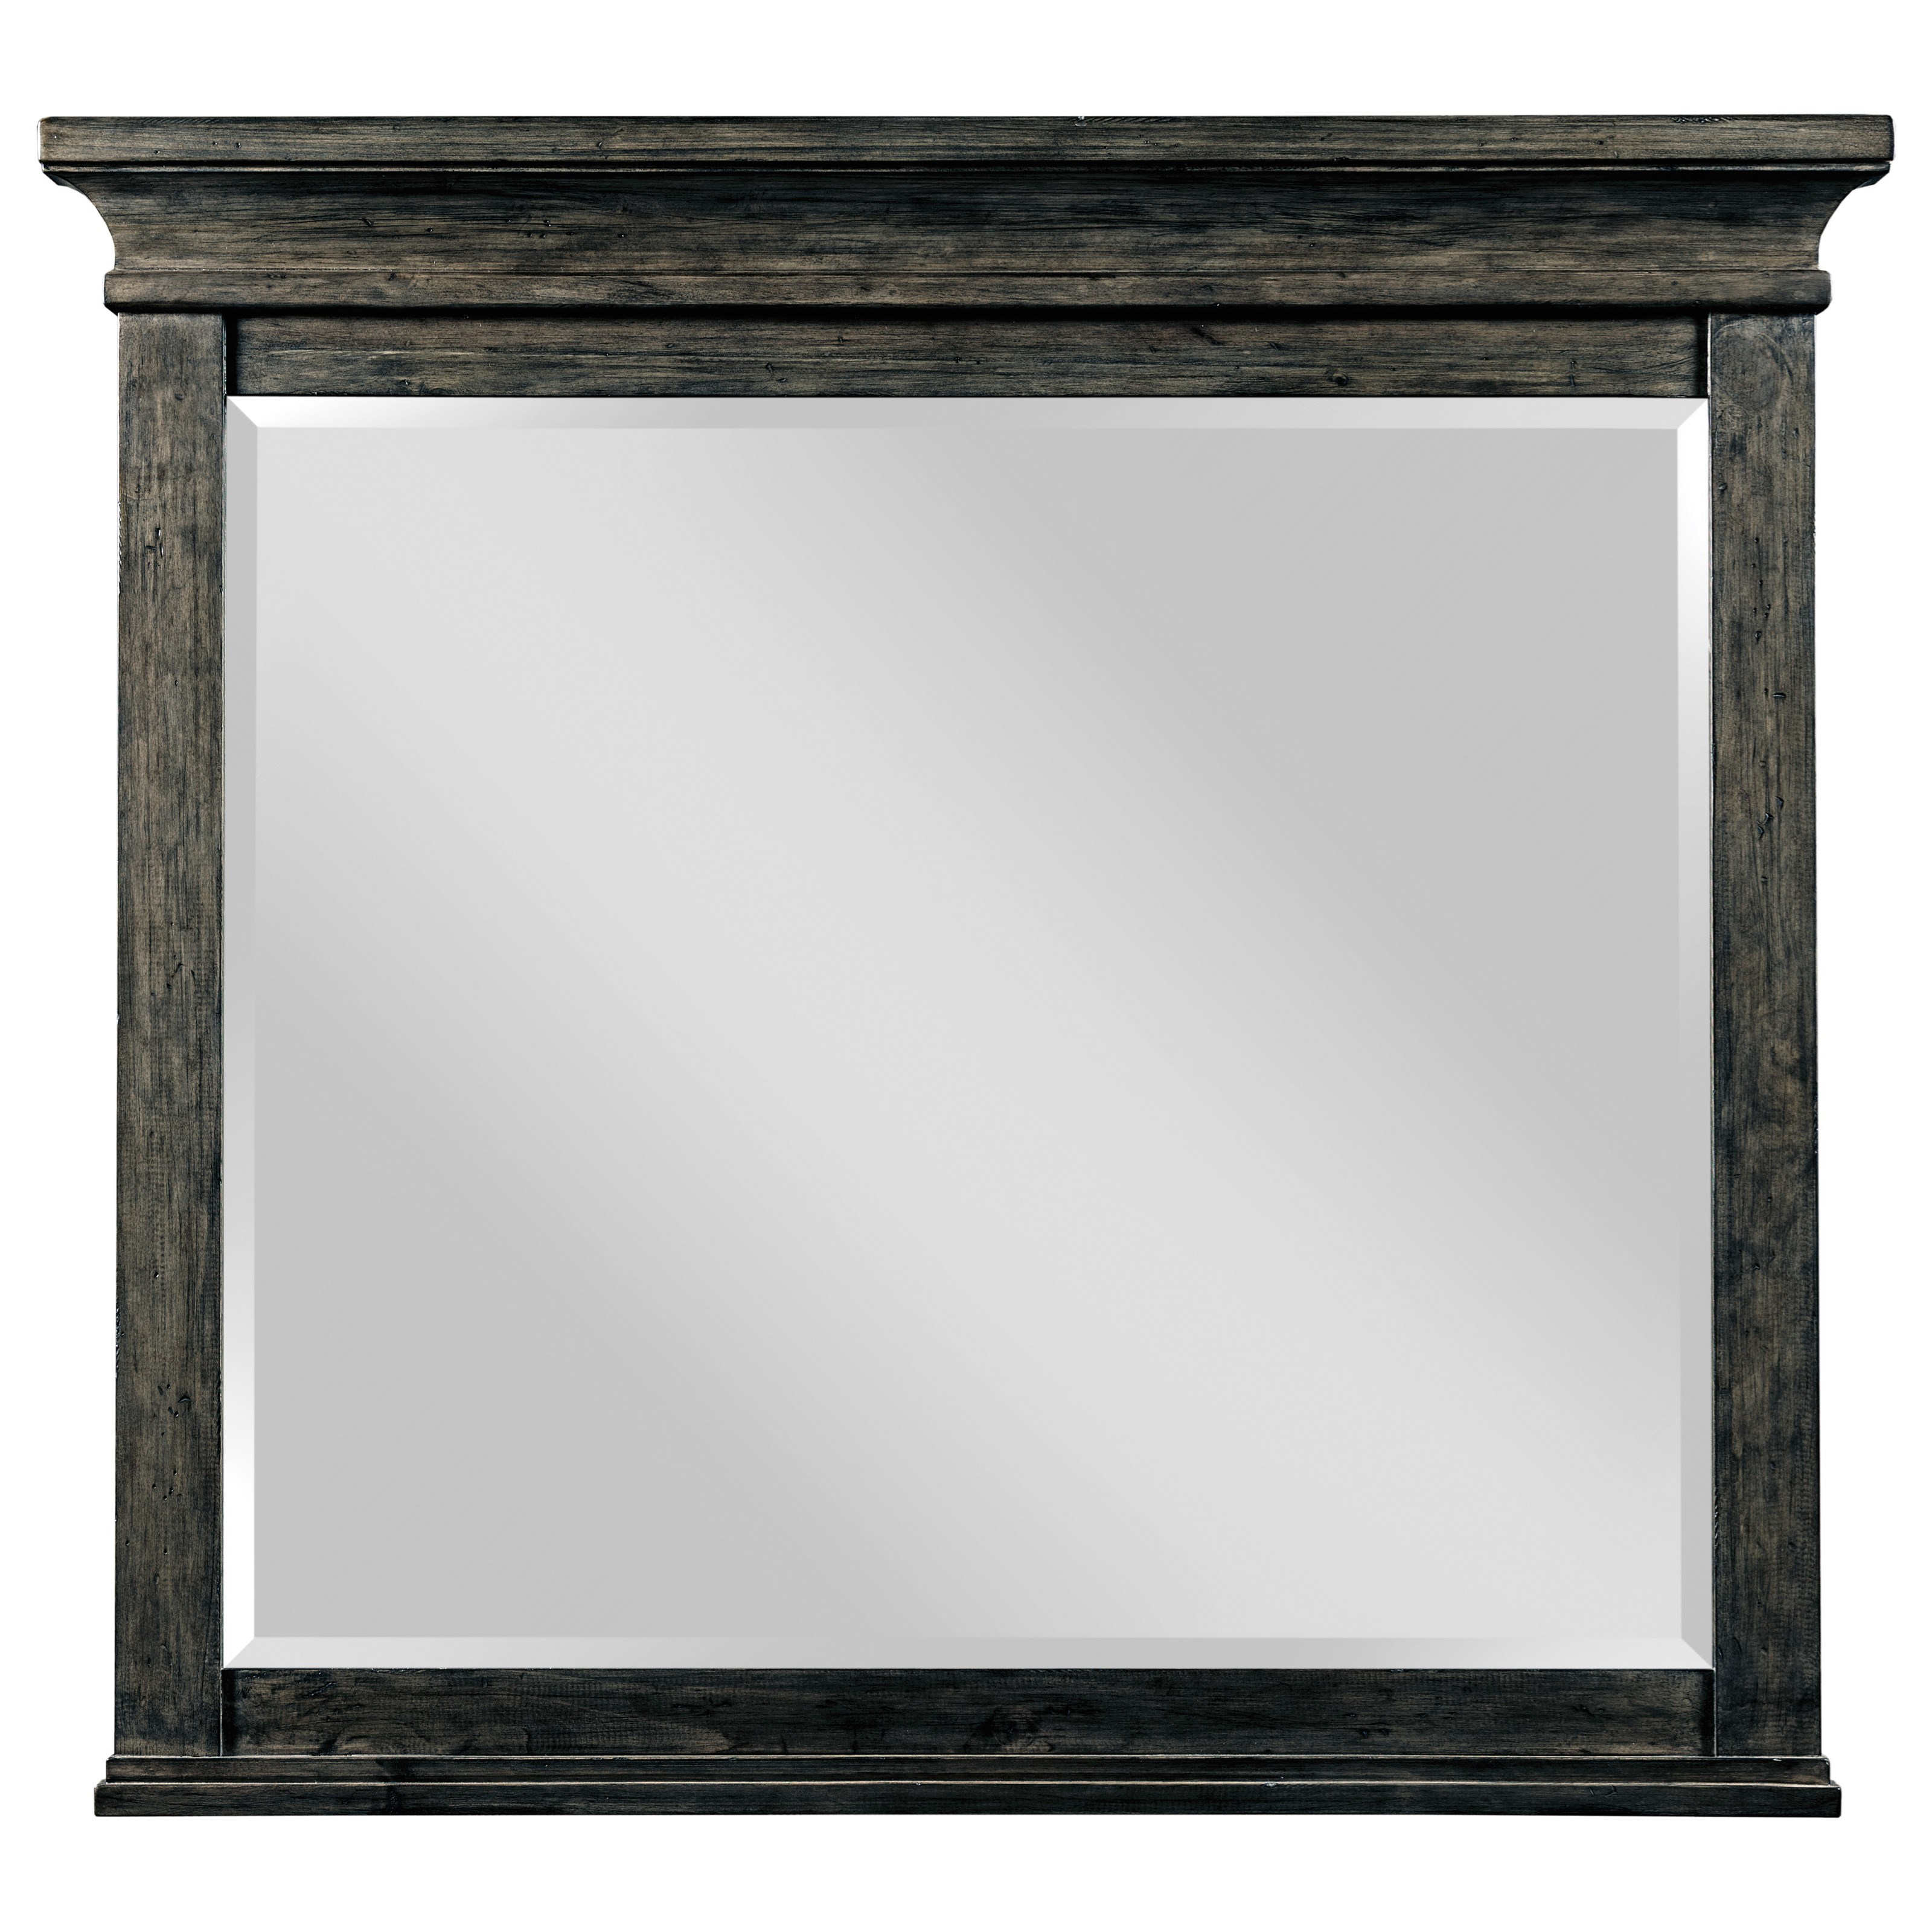 Plank Road Jessup Mirror                                by Kincaid Furniture at Northeast Factory Direct